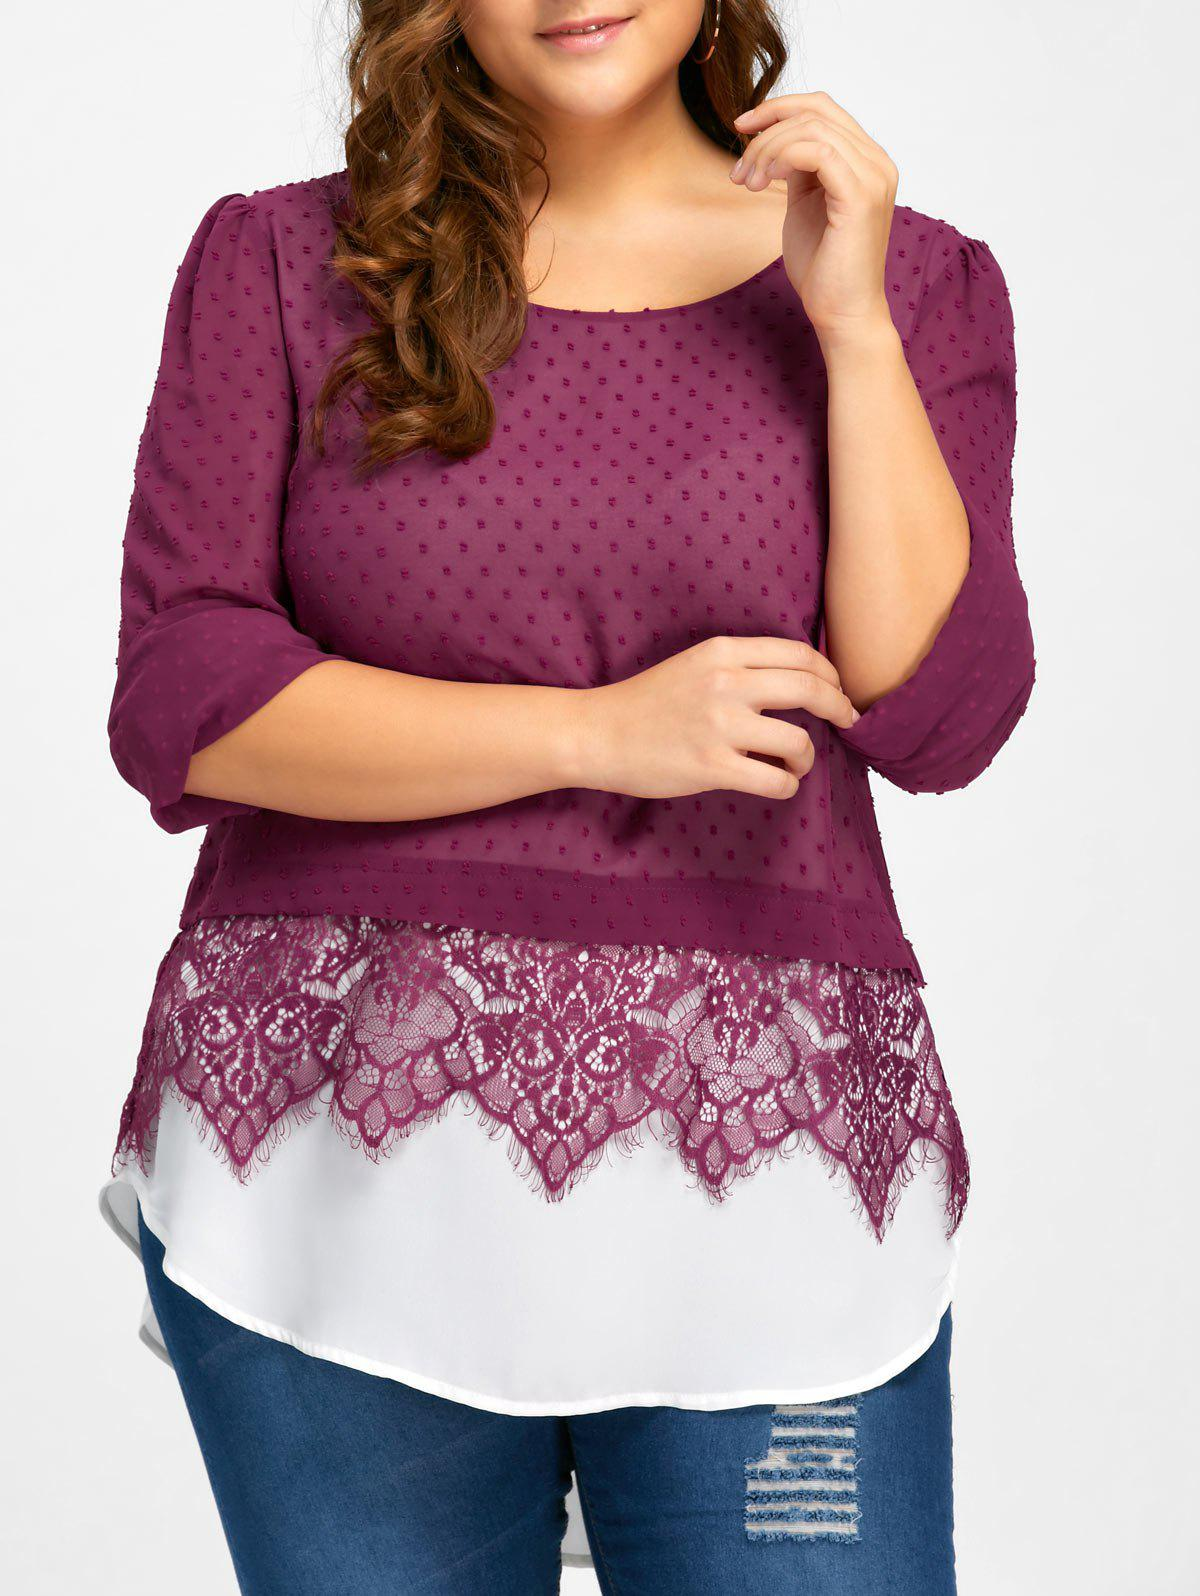 Plus Size Lace Trim Swiss Dot BlouseWOMEN<br><br>Size: 3XL; Color: PURPLISH RED; Material: Polyester; Shirt Length: Long; Sleeve Length: Full; Collar: Scoop Neck; Style: Casual; Season: Fall,Spring; Embellishment: Lace; Pattern Type: Solid; Weight: 0.2800kg; Package Contents: 1 x Blouse;